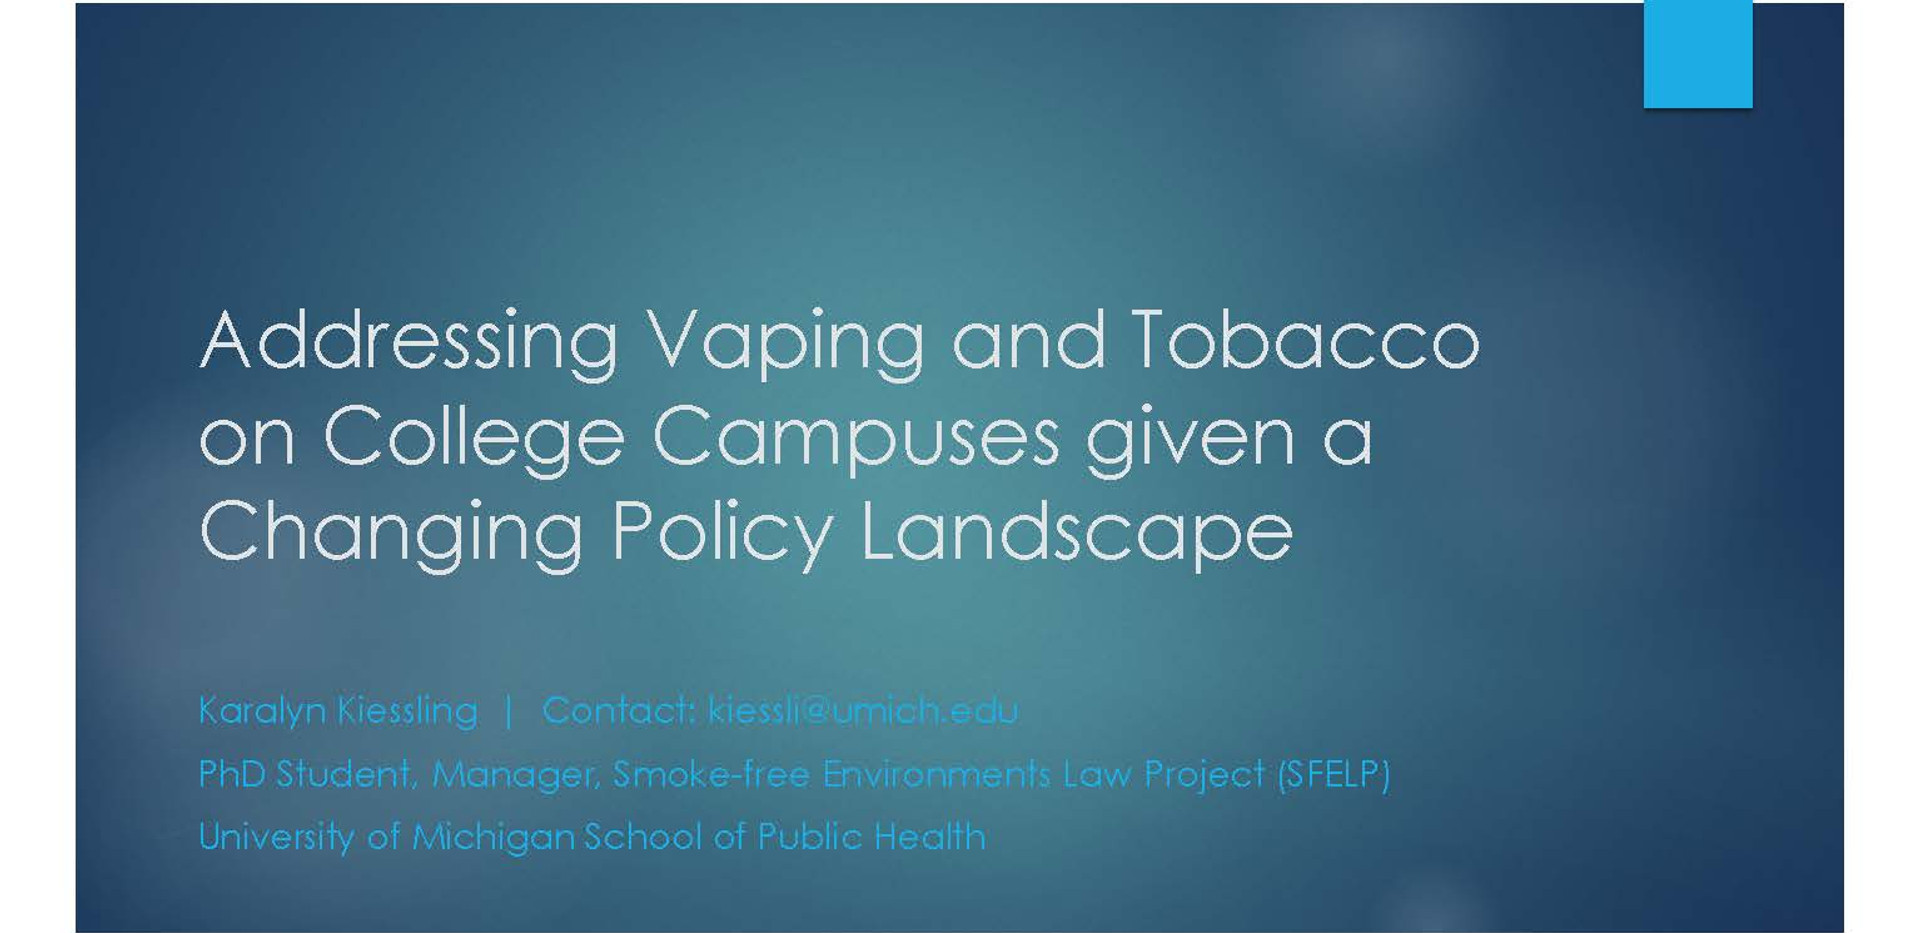 Addressing Vaping and Tobacco on College